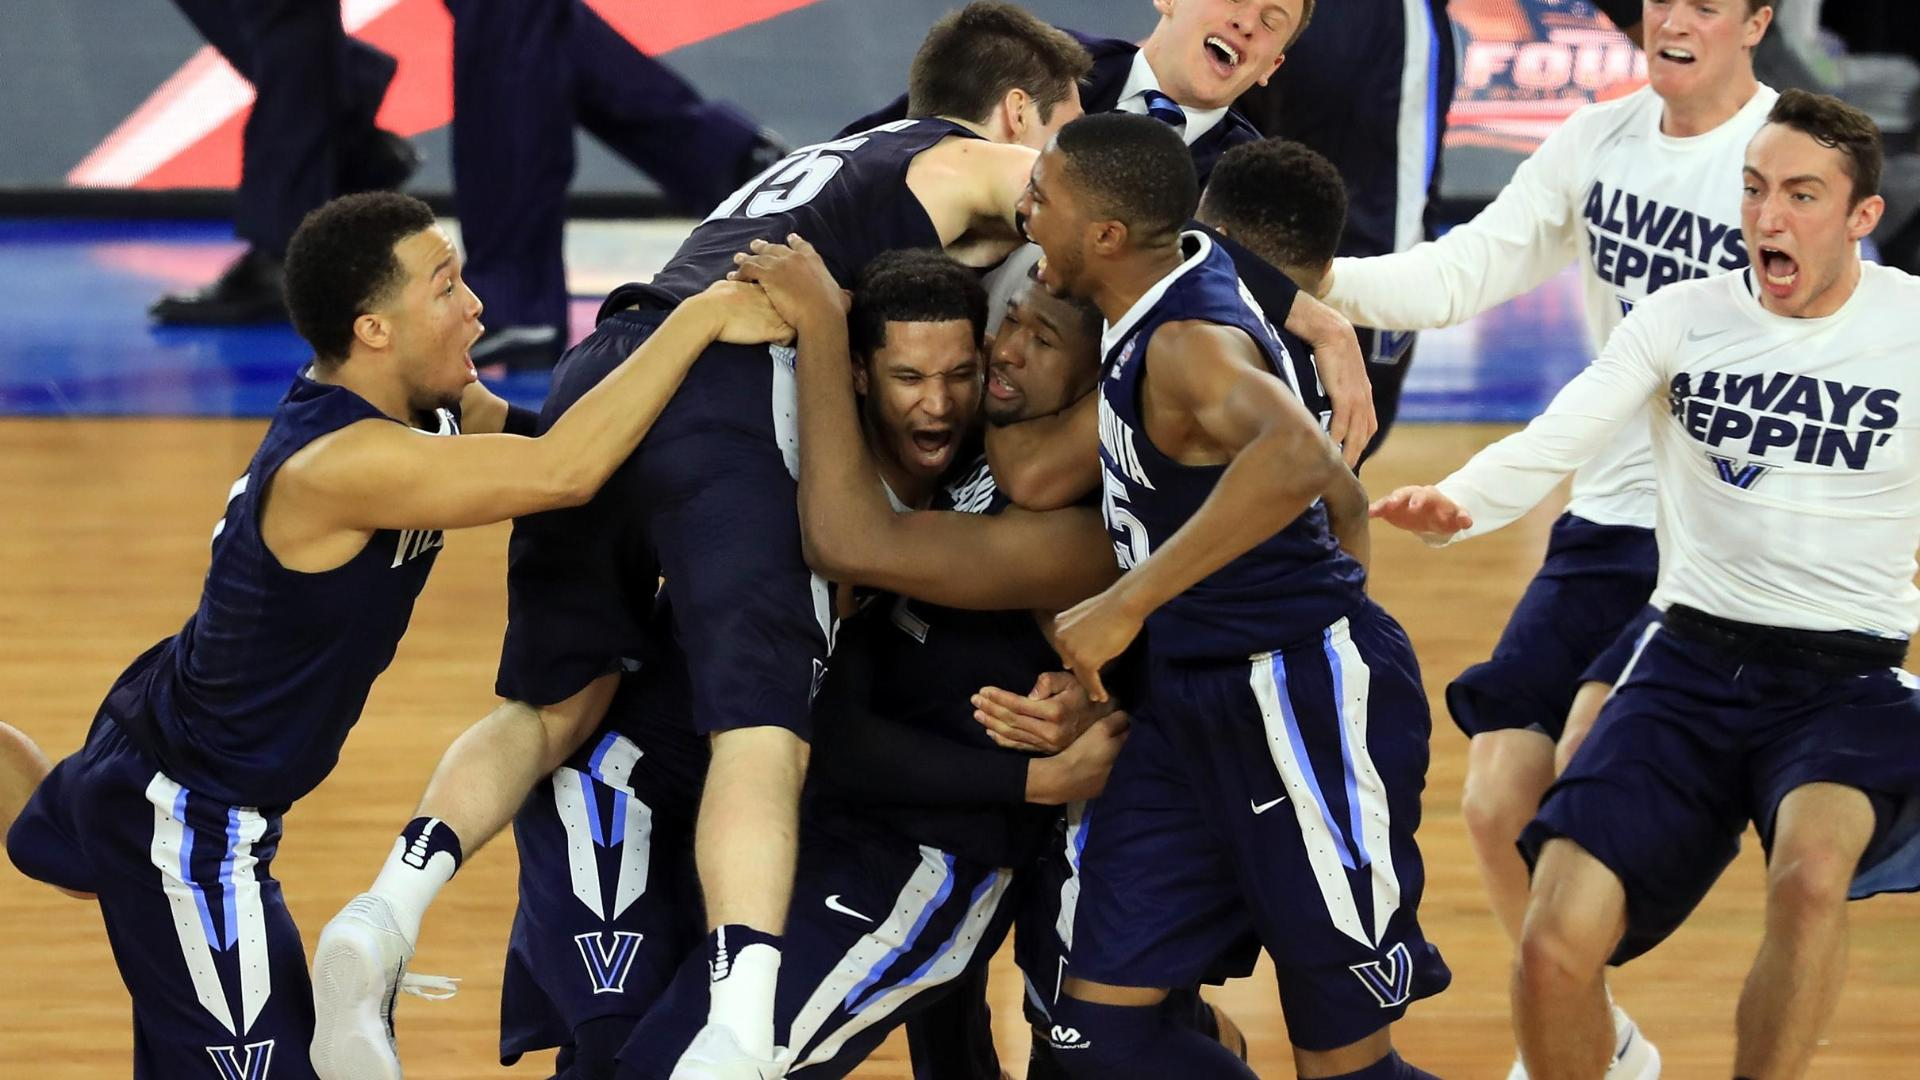 http://a.espncdn.com/media/motion/2016/0405/dm_160404_ncb_villanova_gamewinner_new241/dm_160404_ncb_villanova_gamewinner_new241.jpg